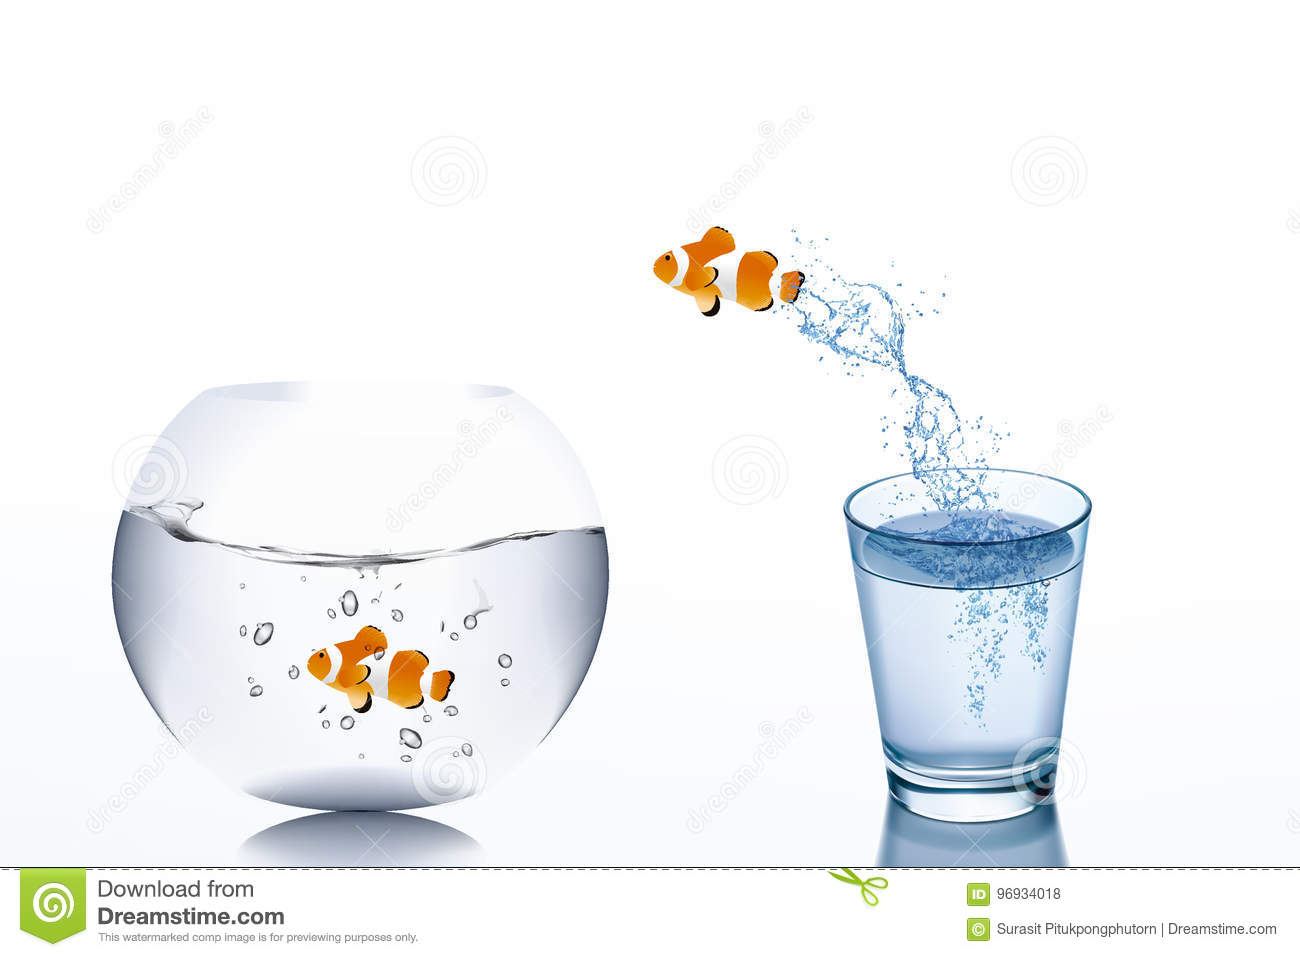 Business Challenge and Growth Concept : Goldfish escape from water in glass jumping to fishbowl.